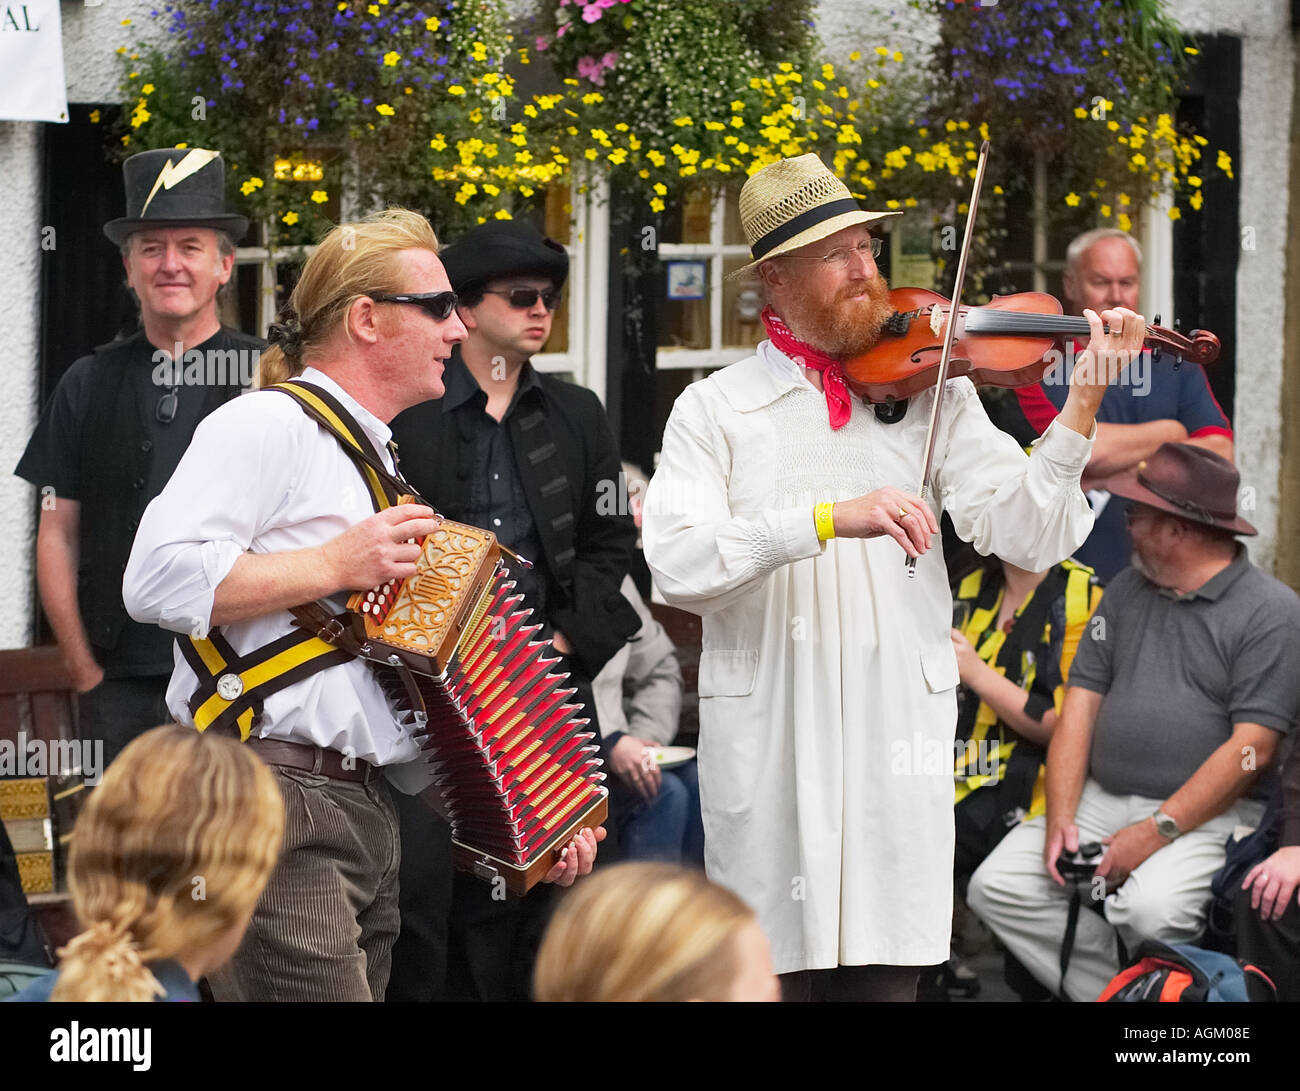 Musicians dressed in traditional costume play for the morris dancers at a Folk Festival in Yorkshire, England, UK - Stock Image